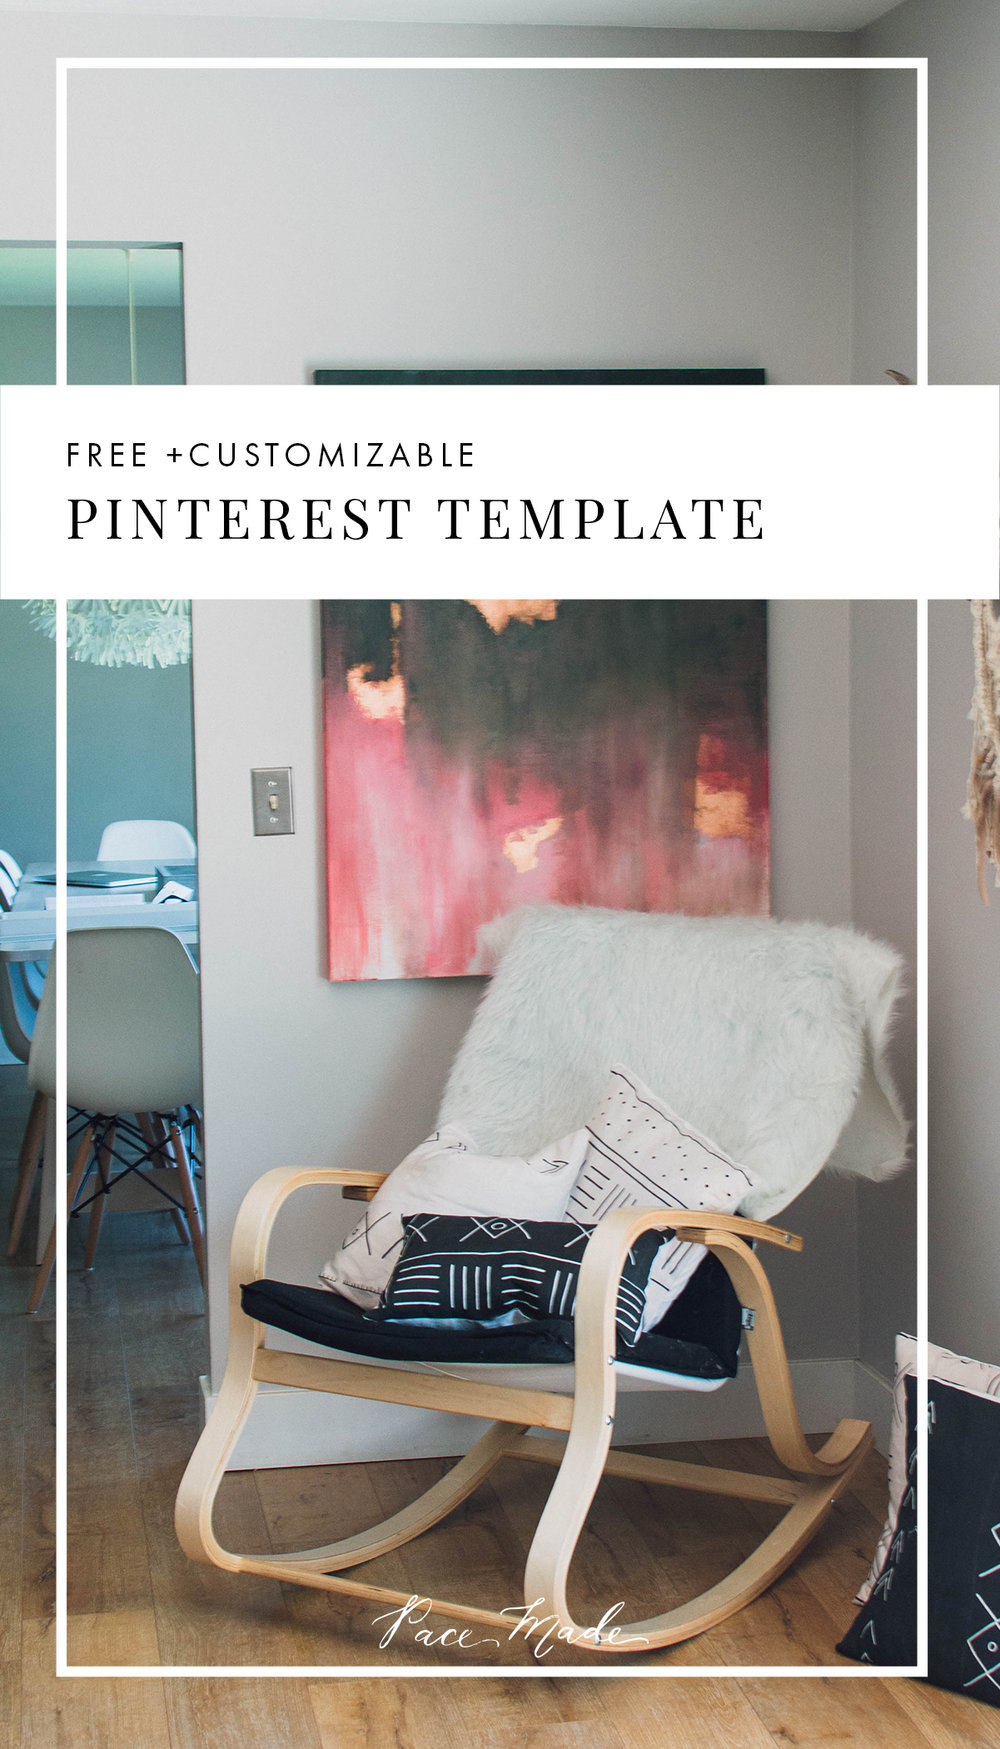 Free Pinterest Template - Customizable - It's important to create a cohesive feed across all platforms, so today I wanted to share my Pinterest template freebies. Open them up in photoshop, change the fonts to your brand & drag your own pictures in and out.